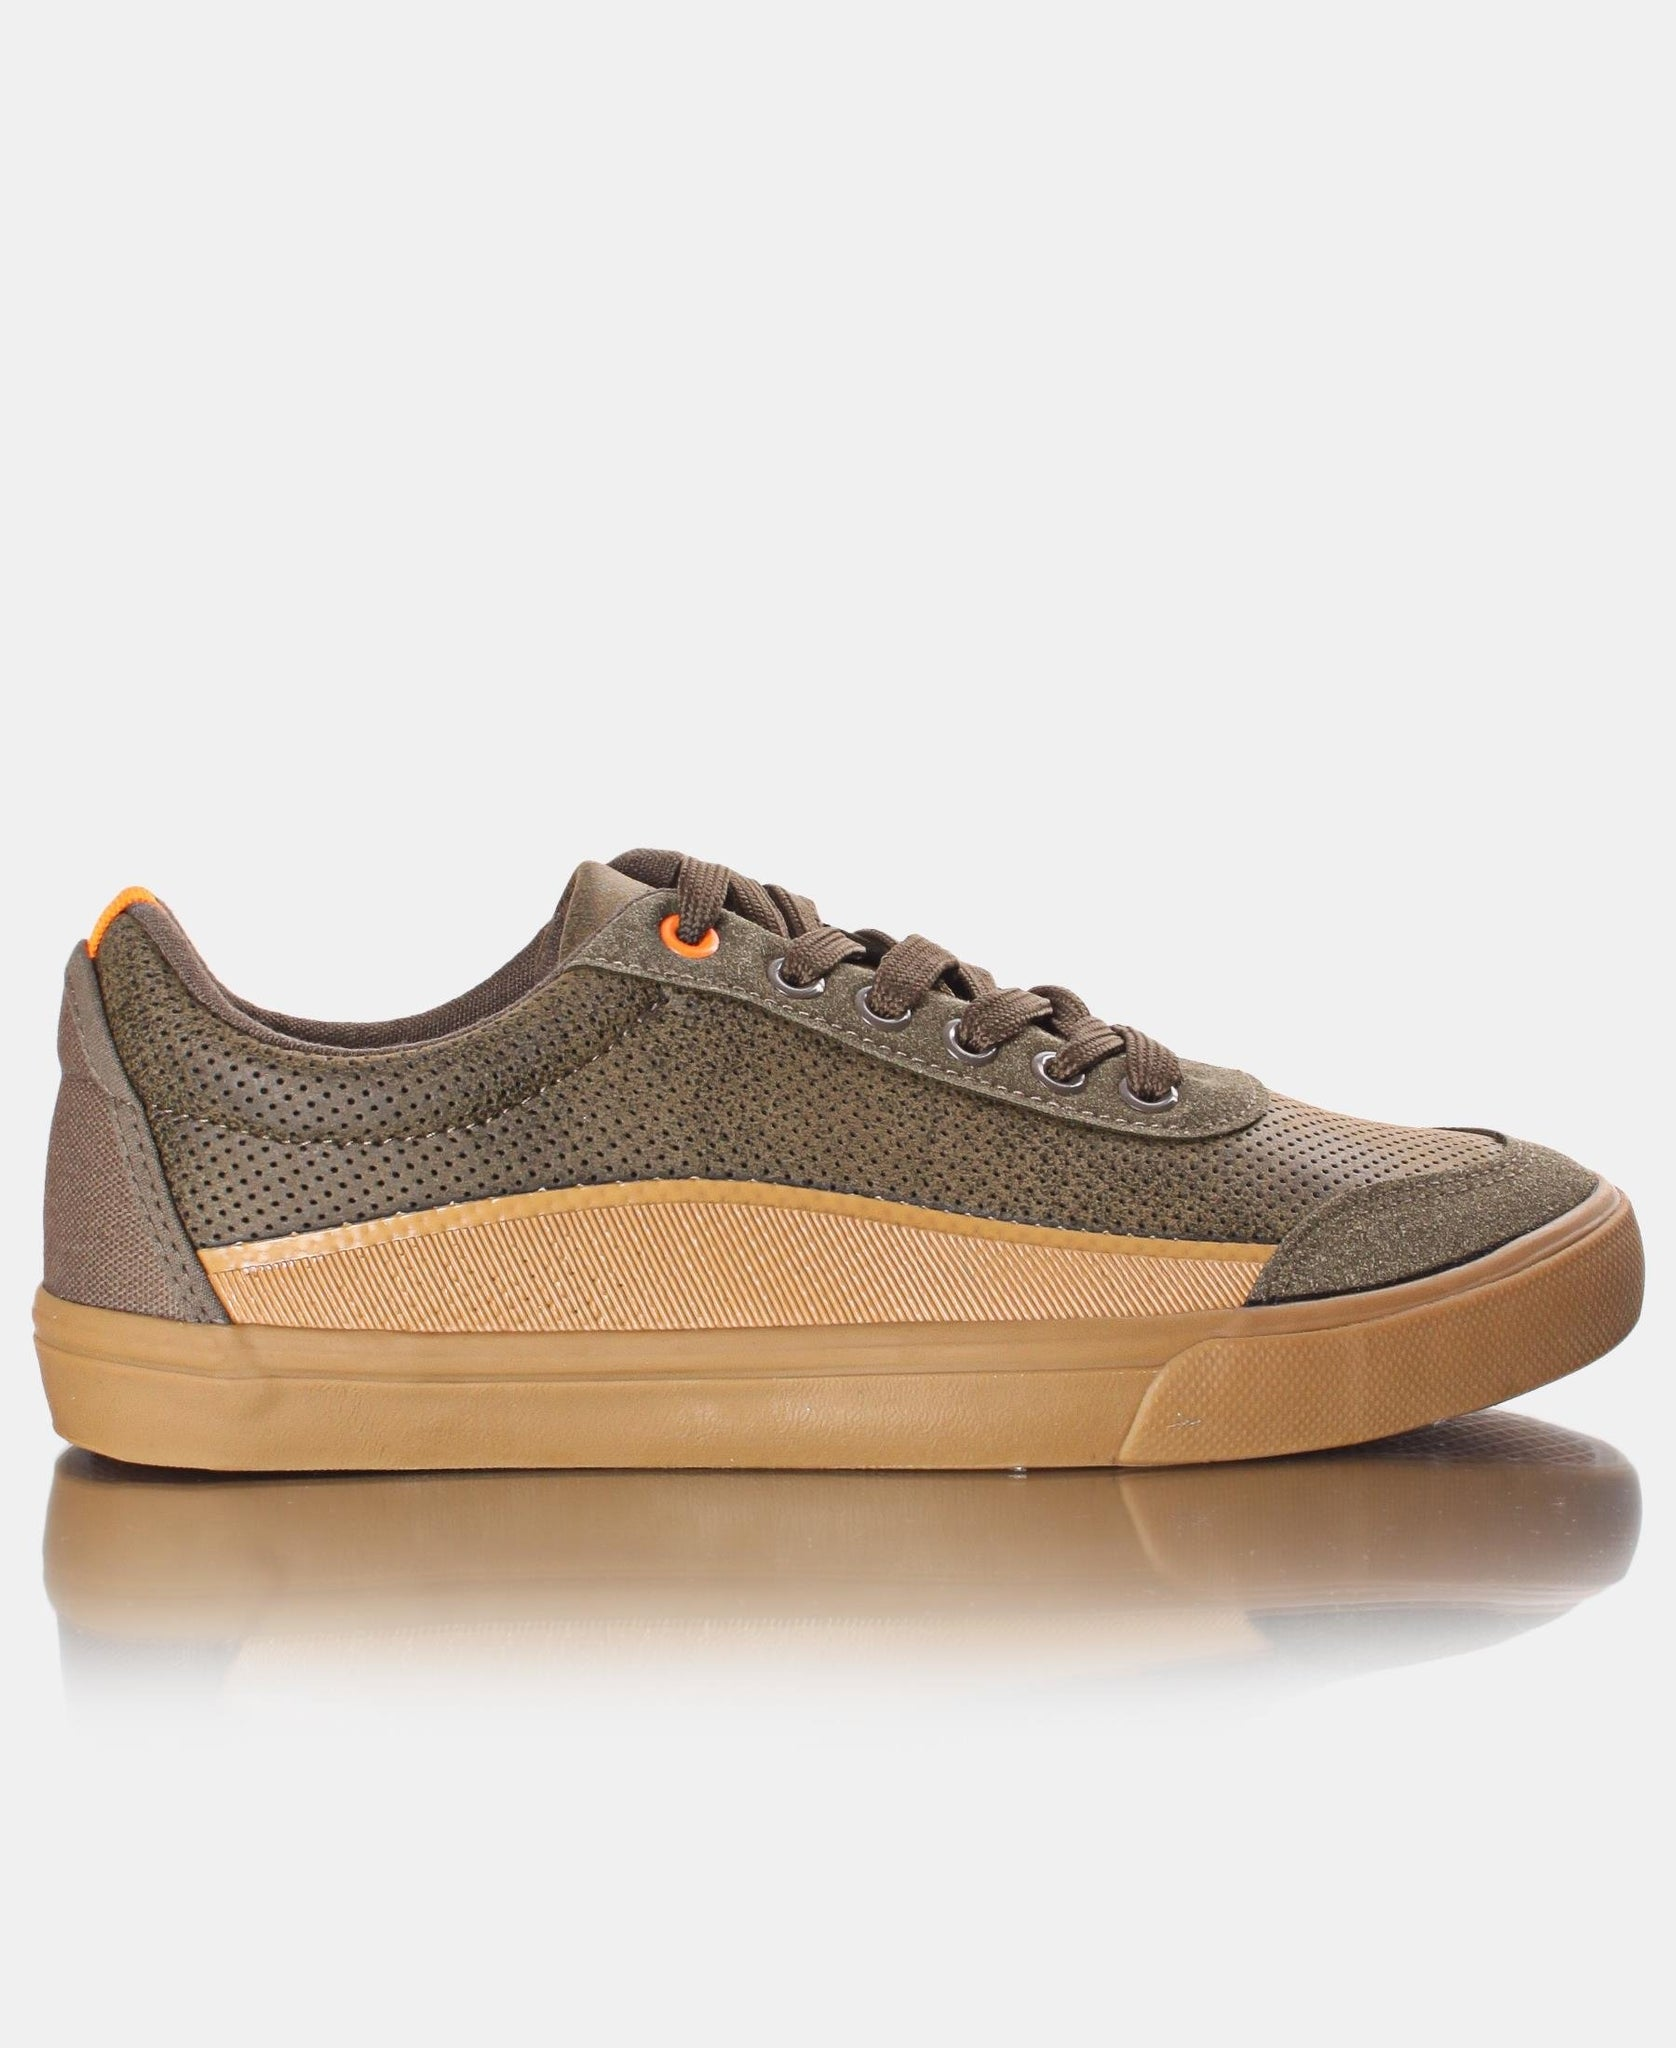 Men's Milano Sneakers - Olive